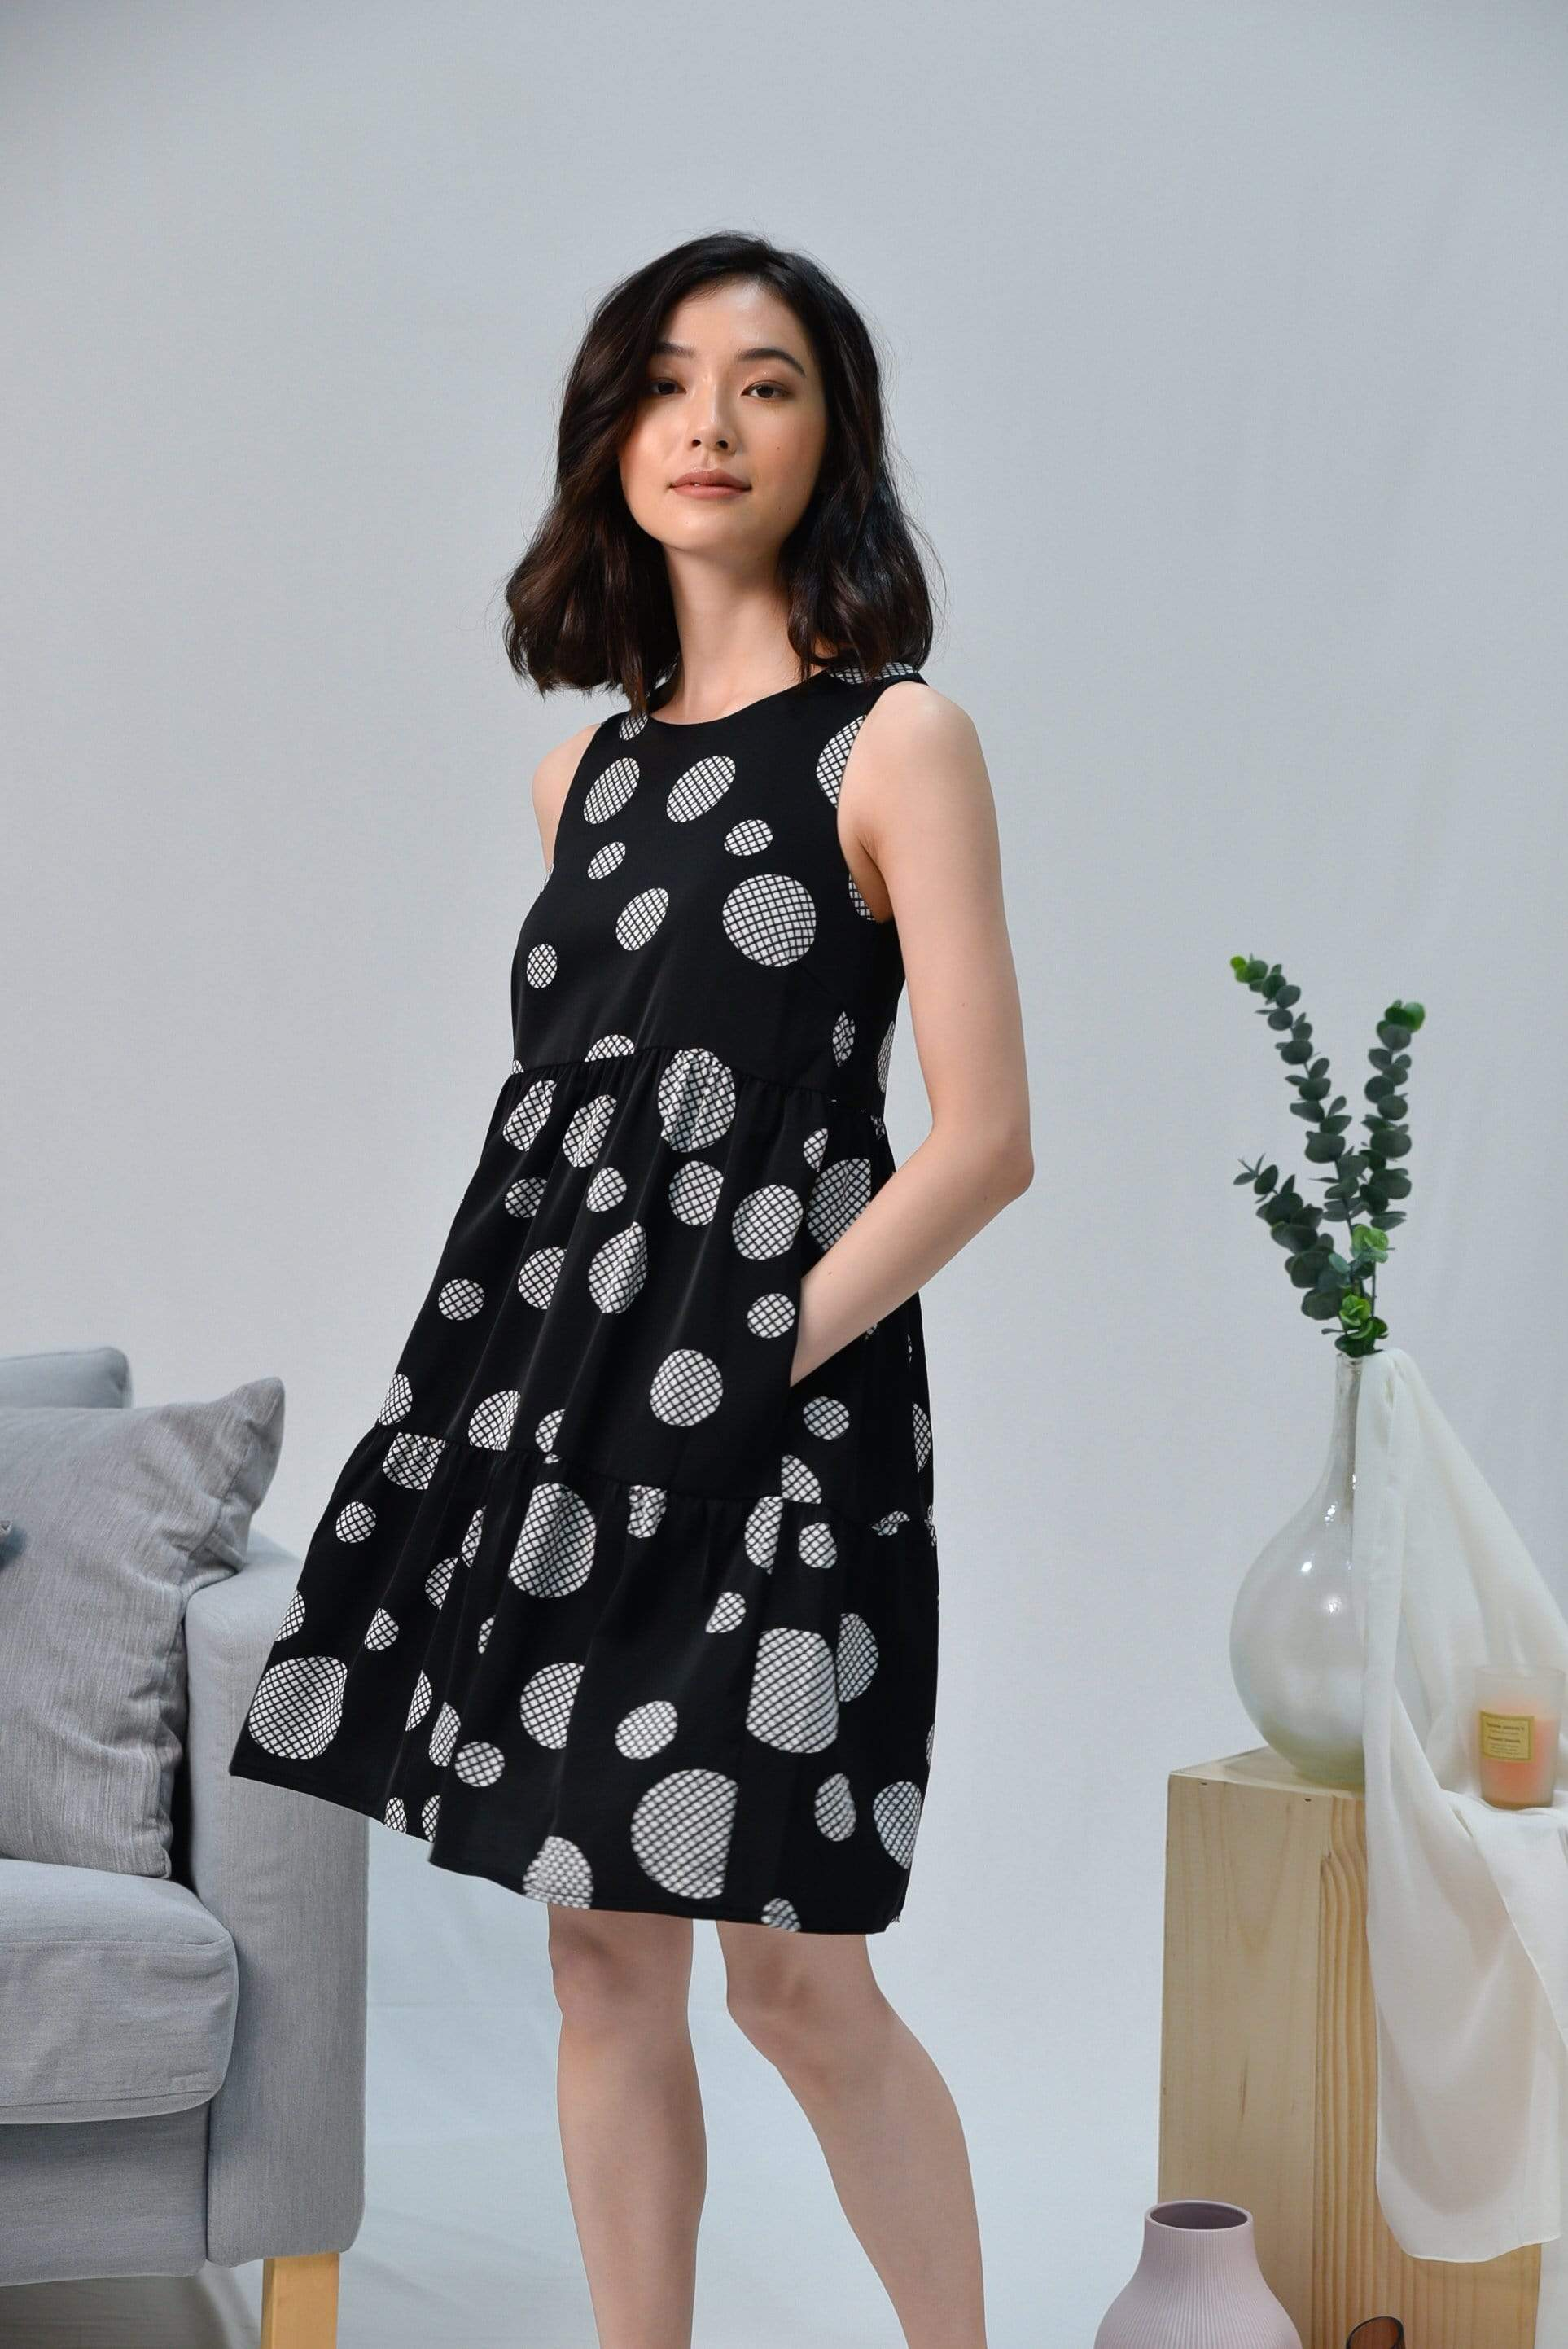 JOIE BLACK ABSTRACT POLKA BABYDOLL DRESS